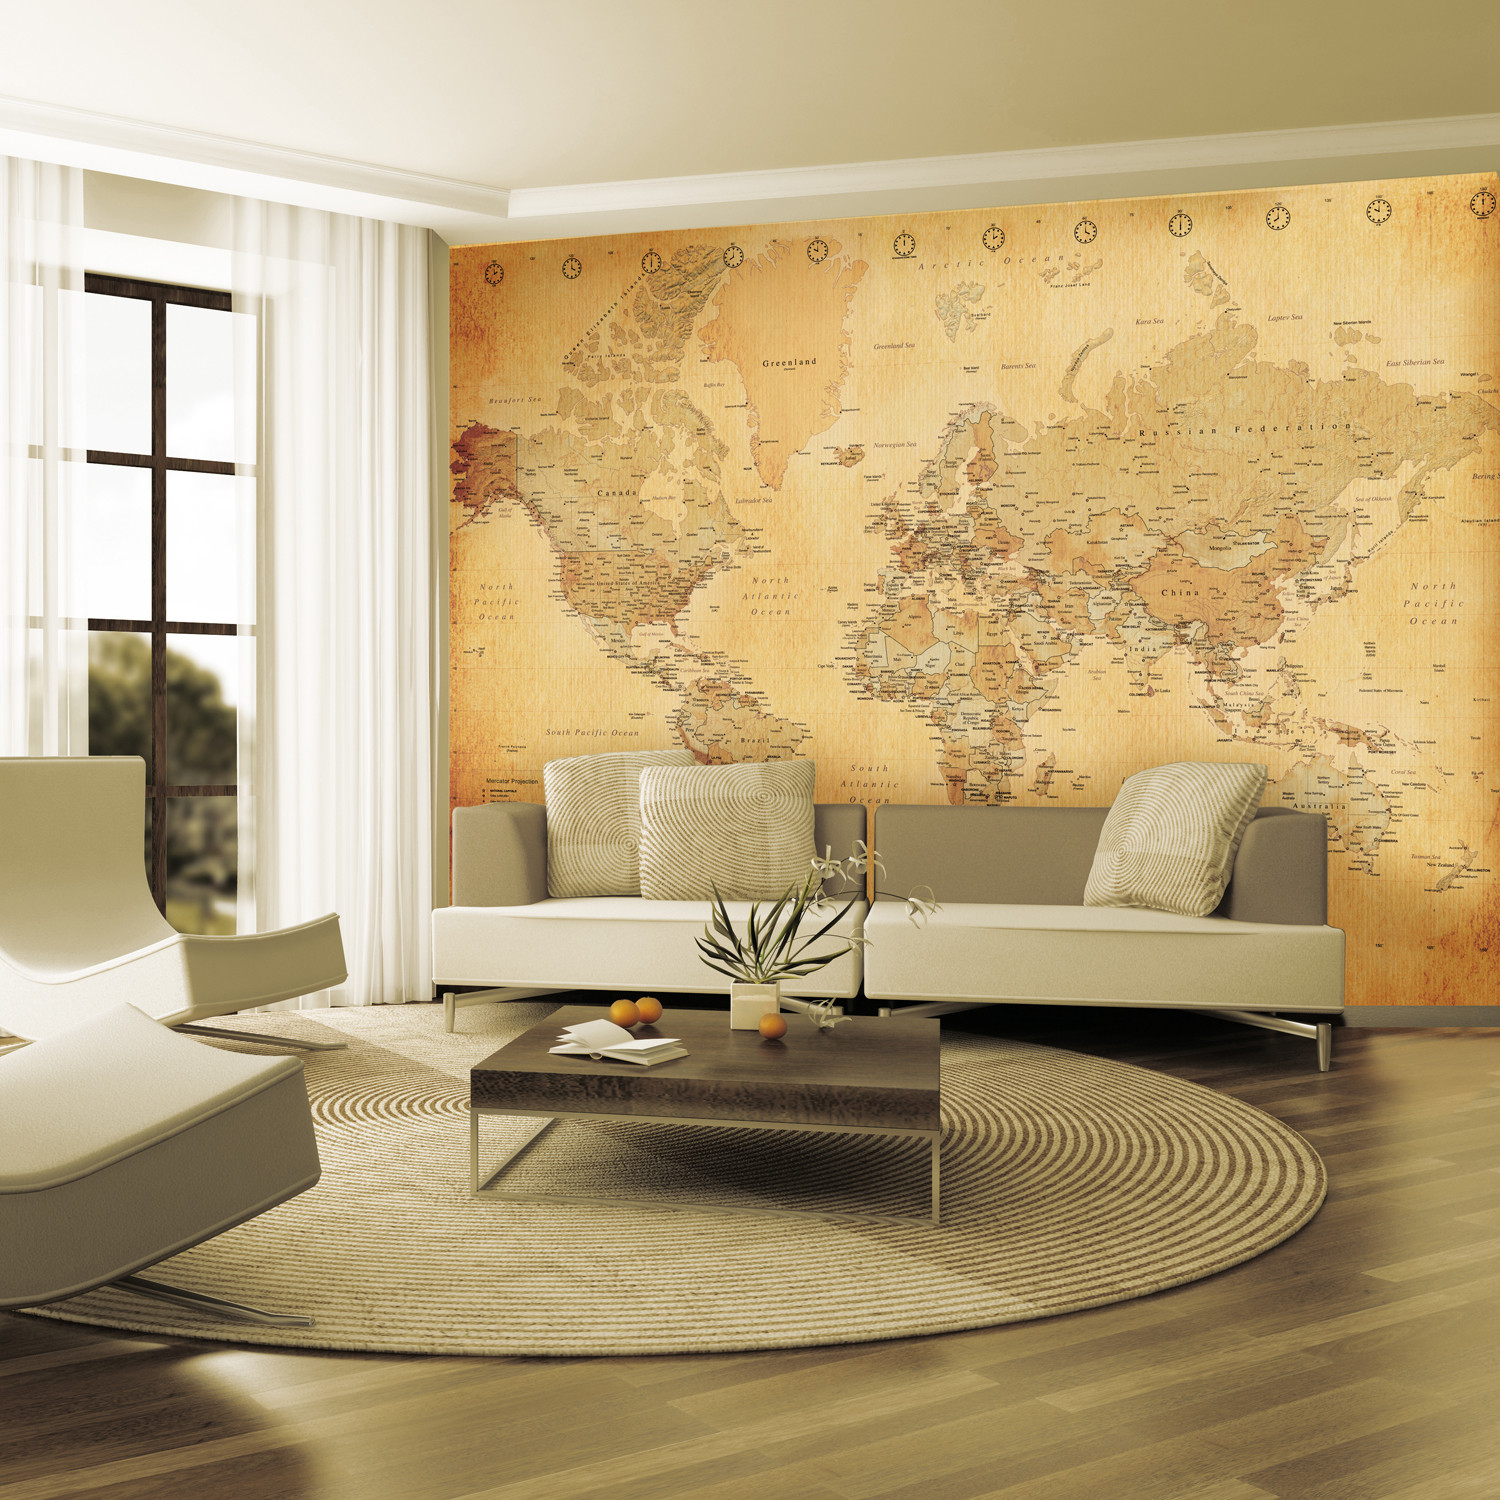 Vintage world map 1 wall murals touch of modern vintage world map gumiabroncs Image collections